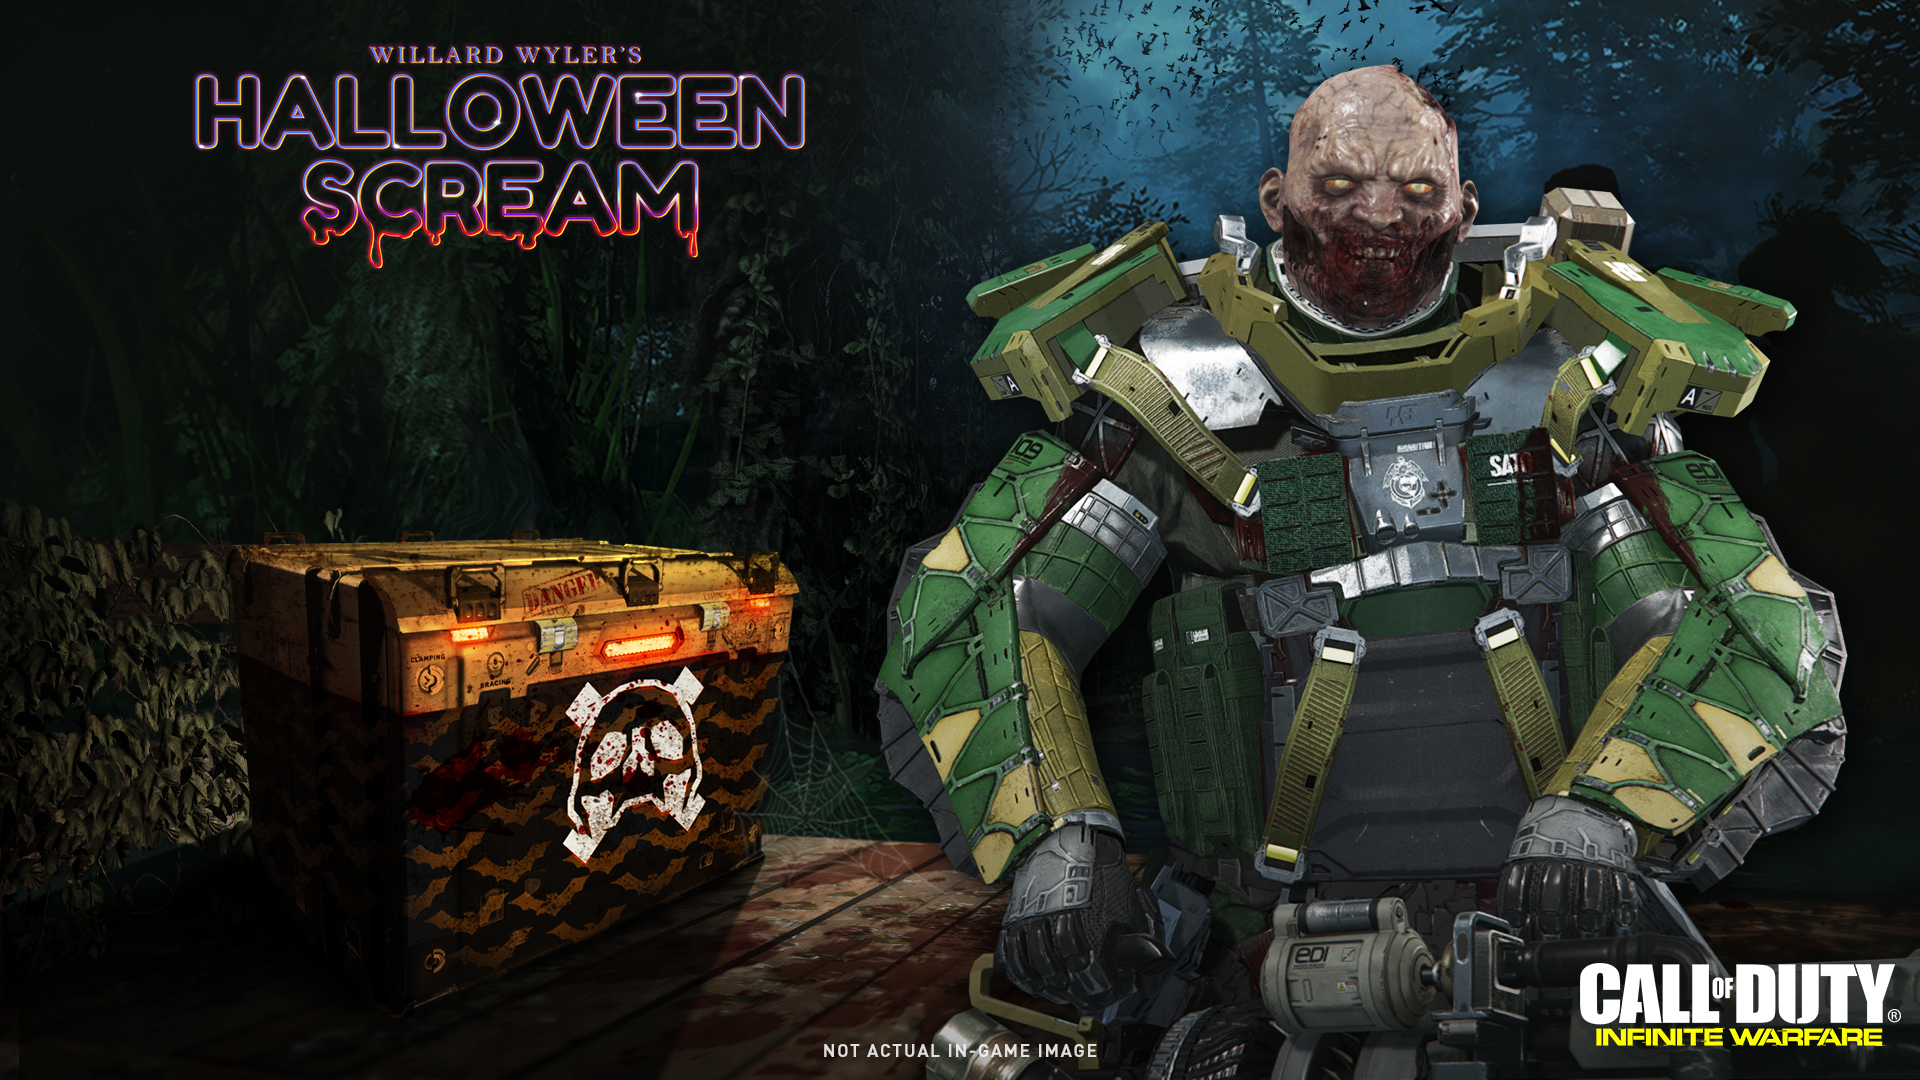 Call of Duty: Infinite Warfare Halloween Scream beginnt heute